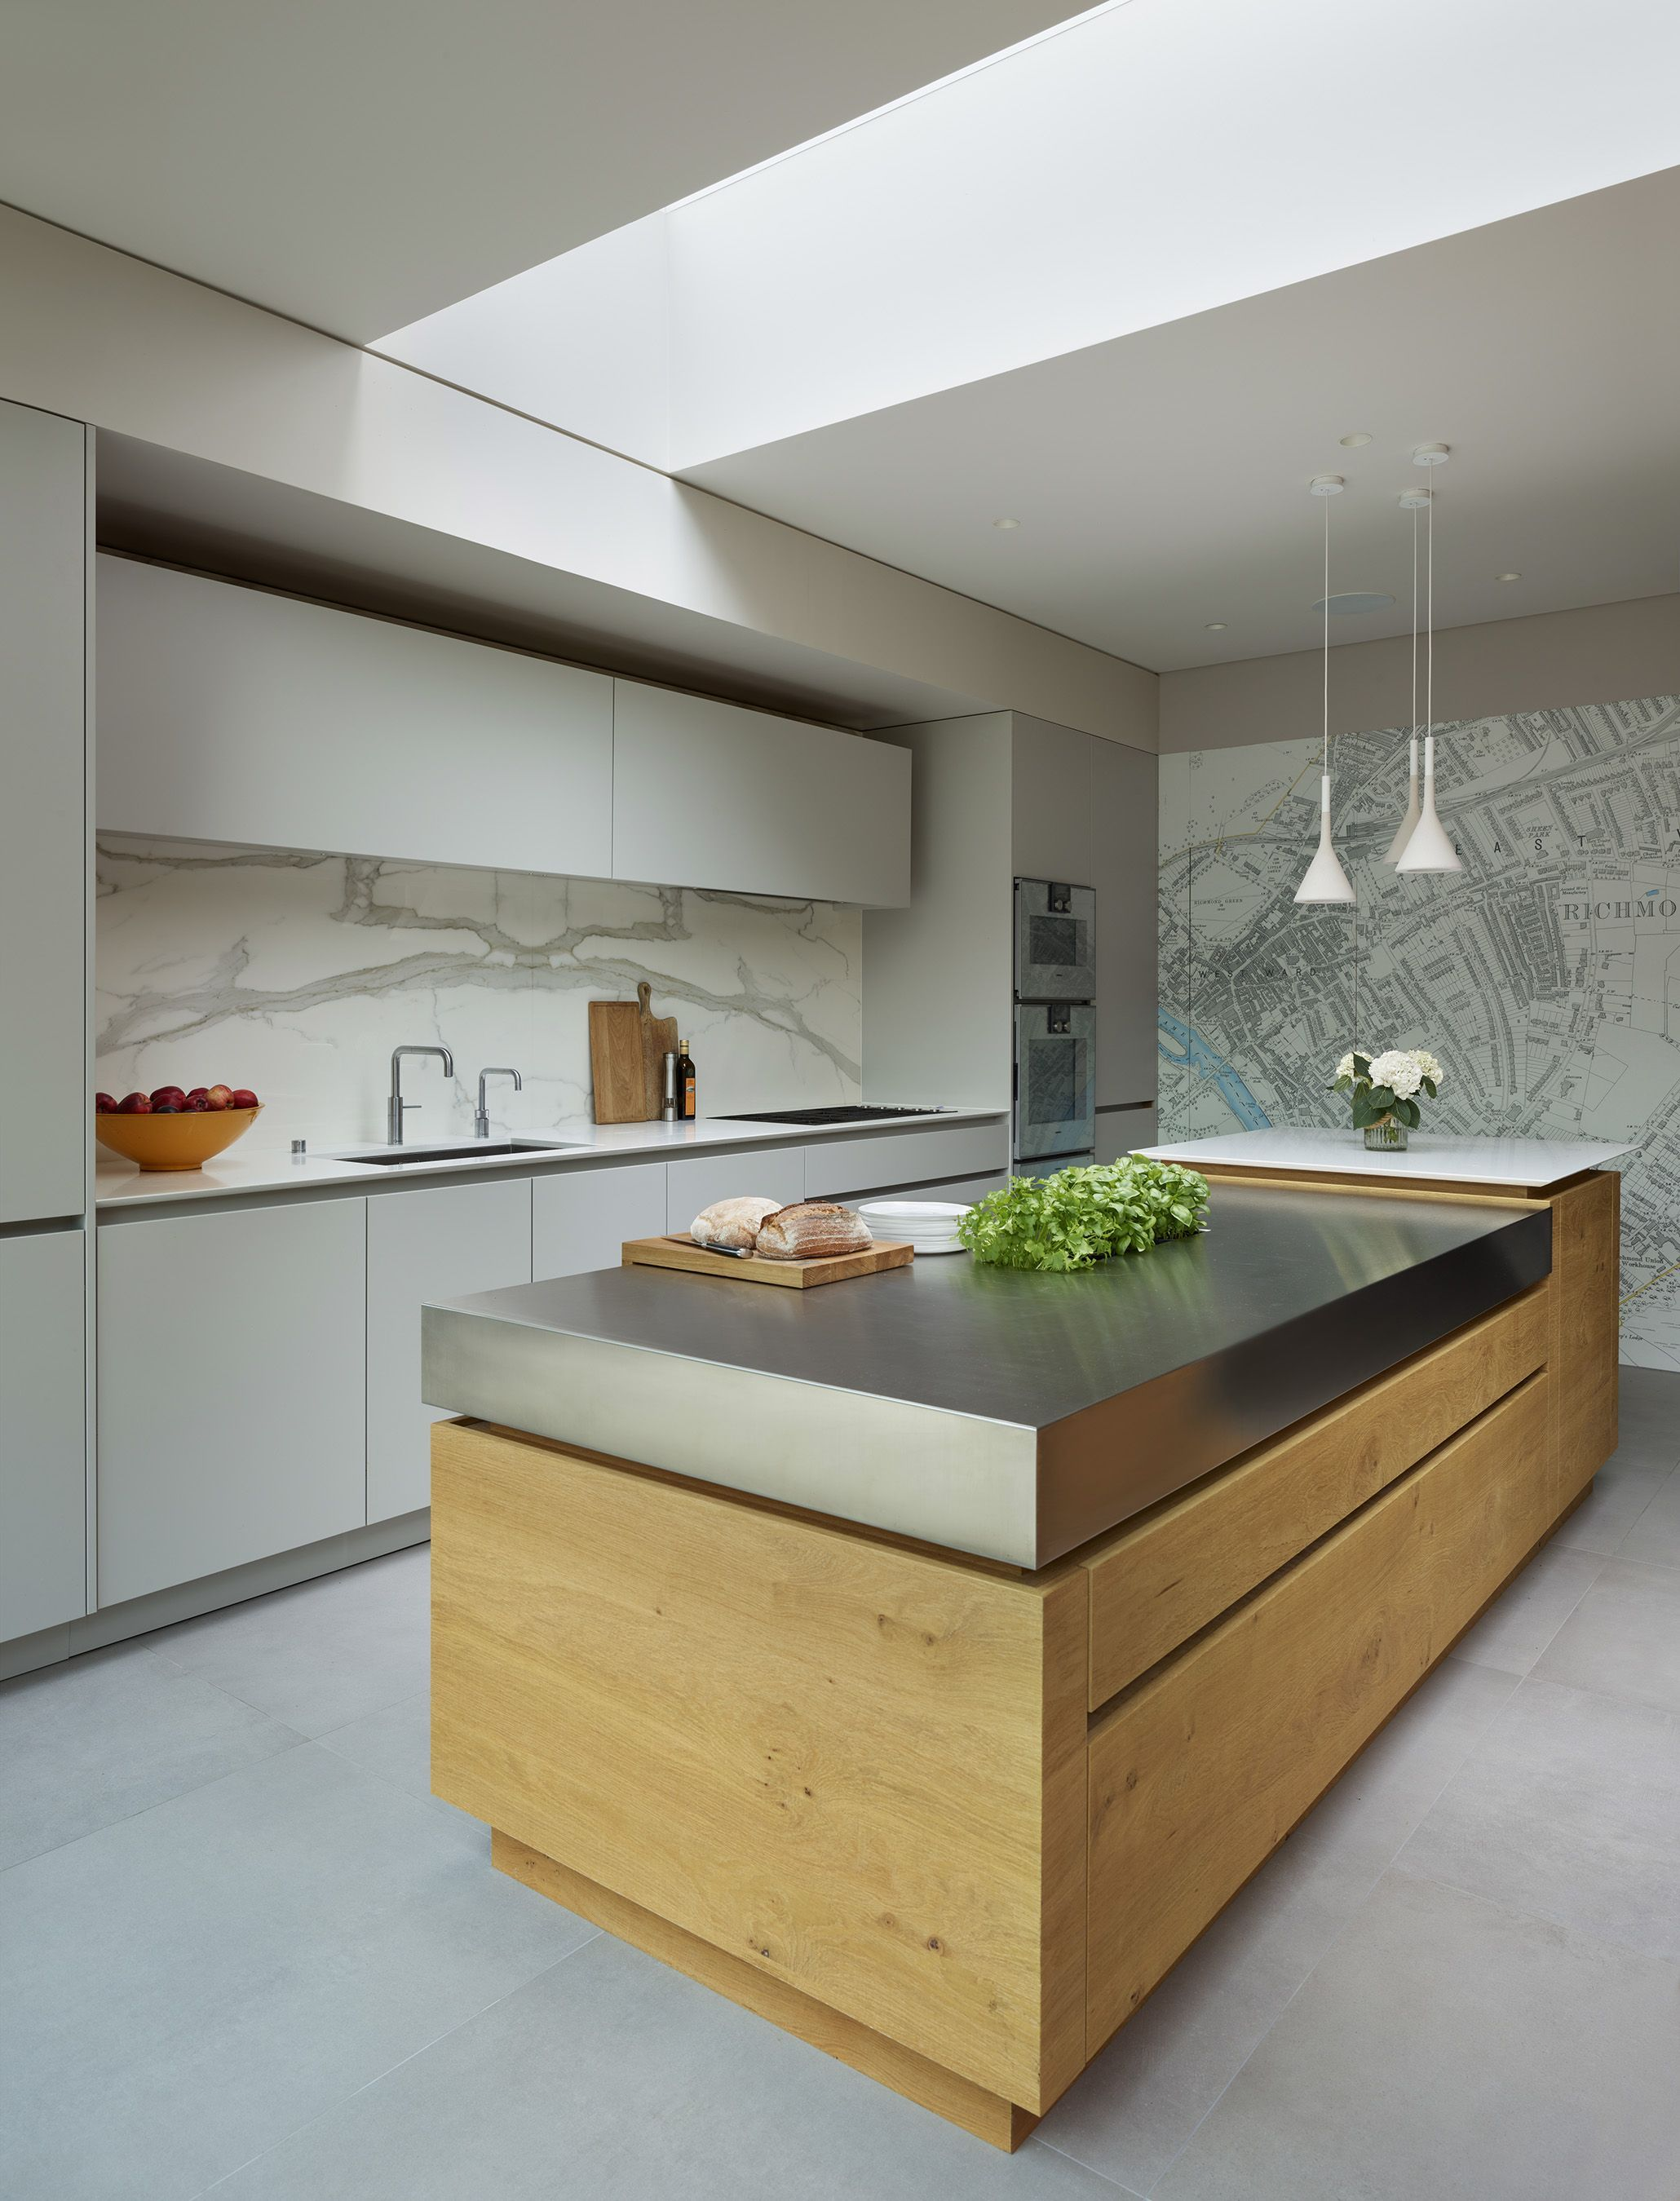 Stainless Steel Worktop On Wood Island In Urbo Roundhouse Kitchen